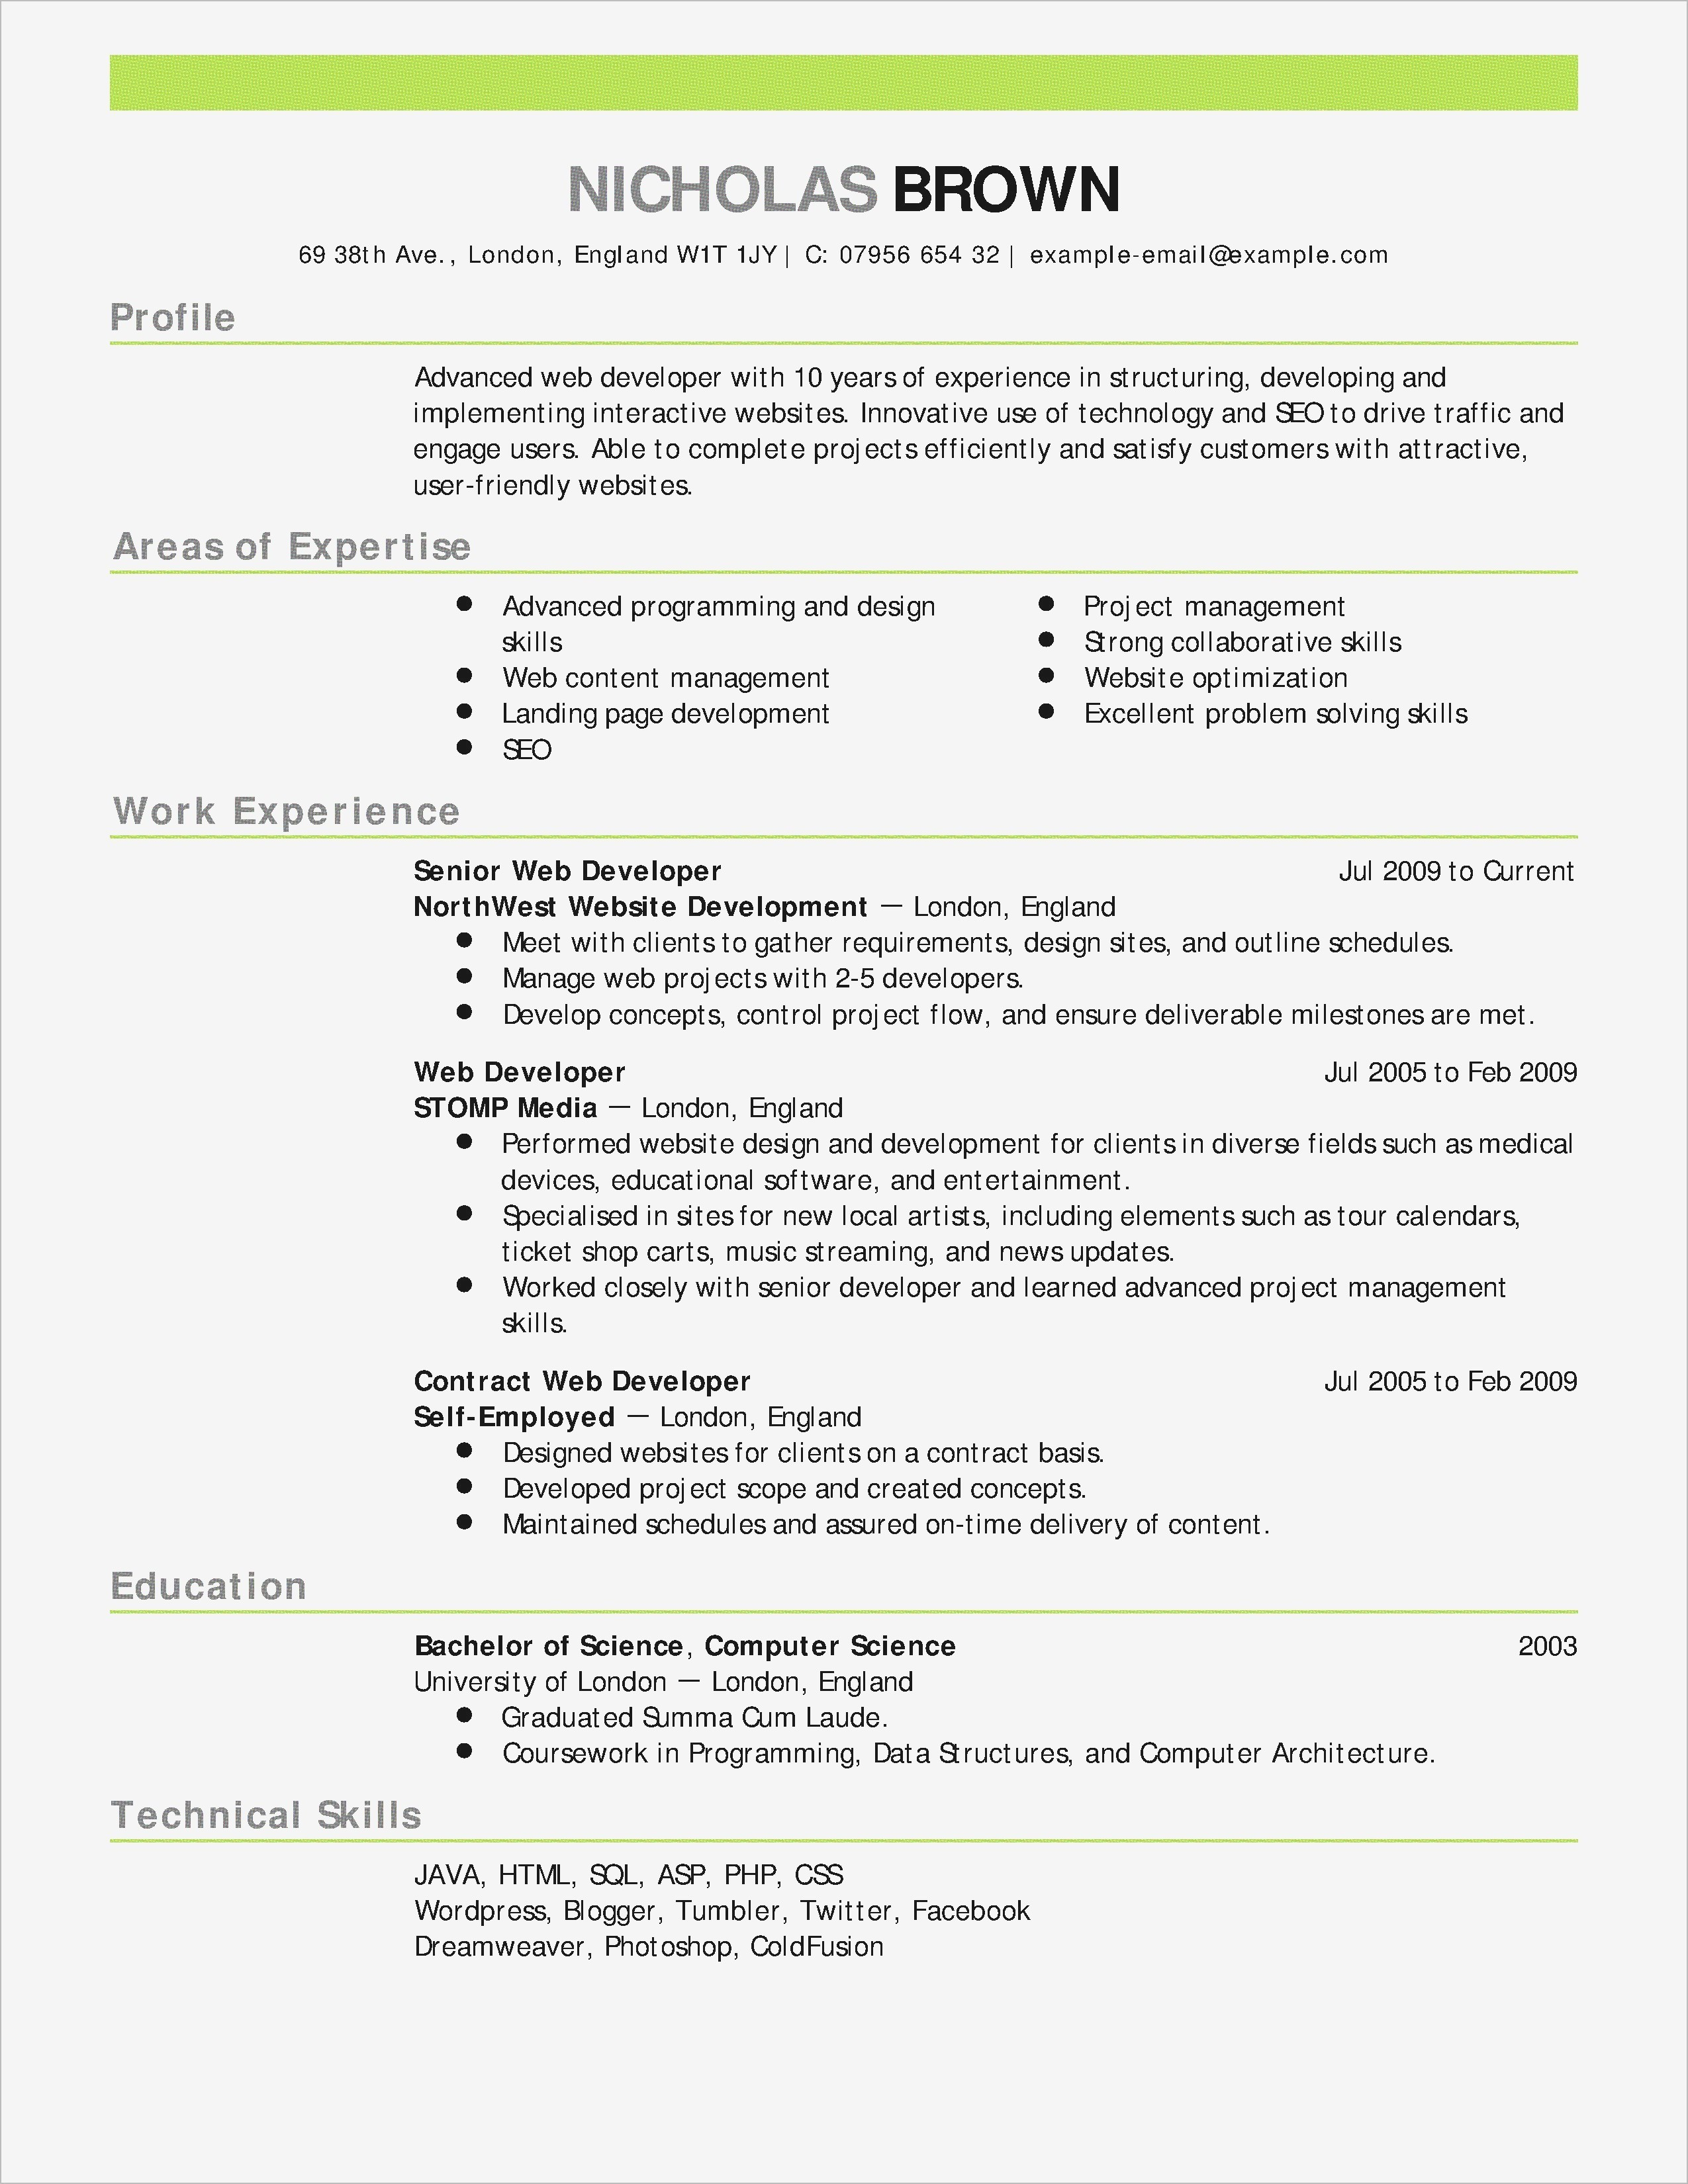 Resume and Cover Letter Writers - Cover Page for Resume New Elegant Cover Letter Writing Service